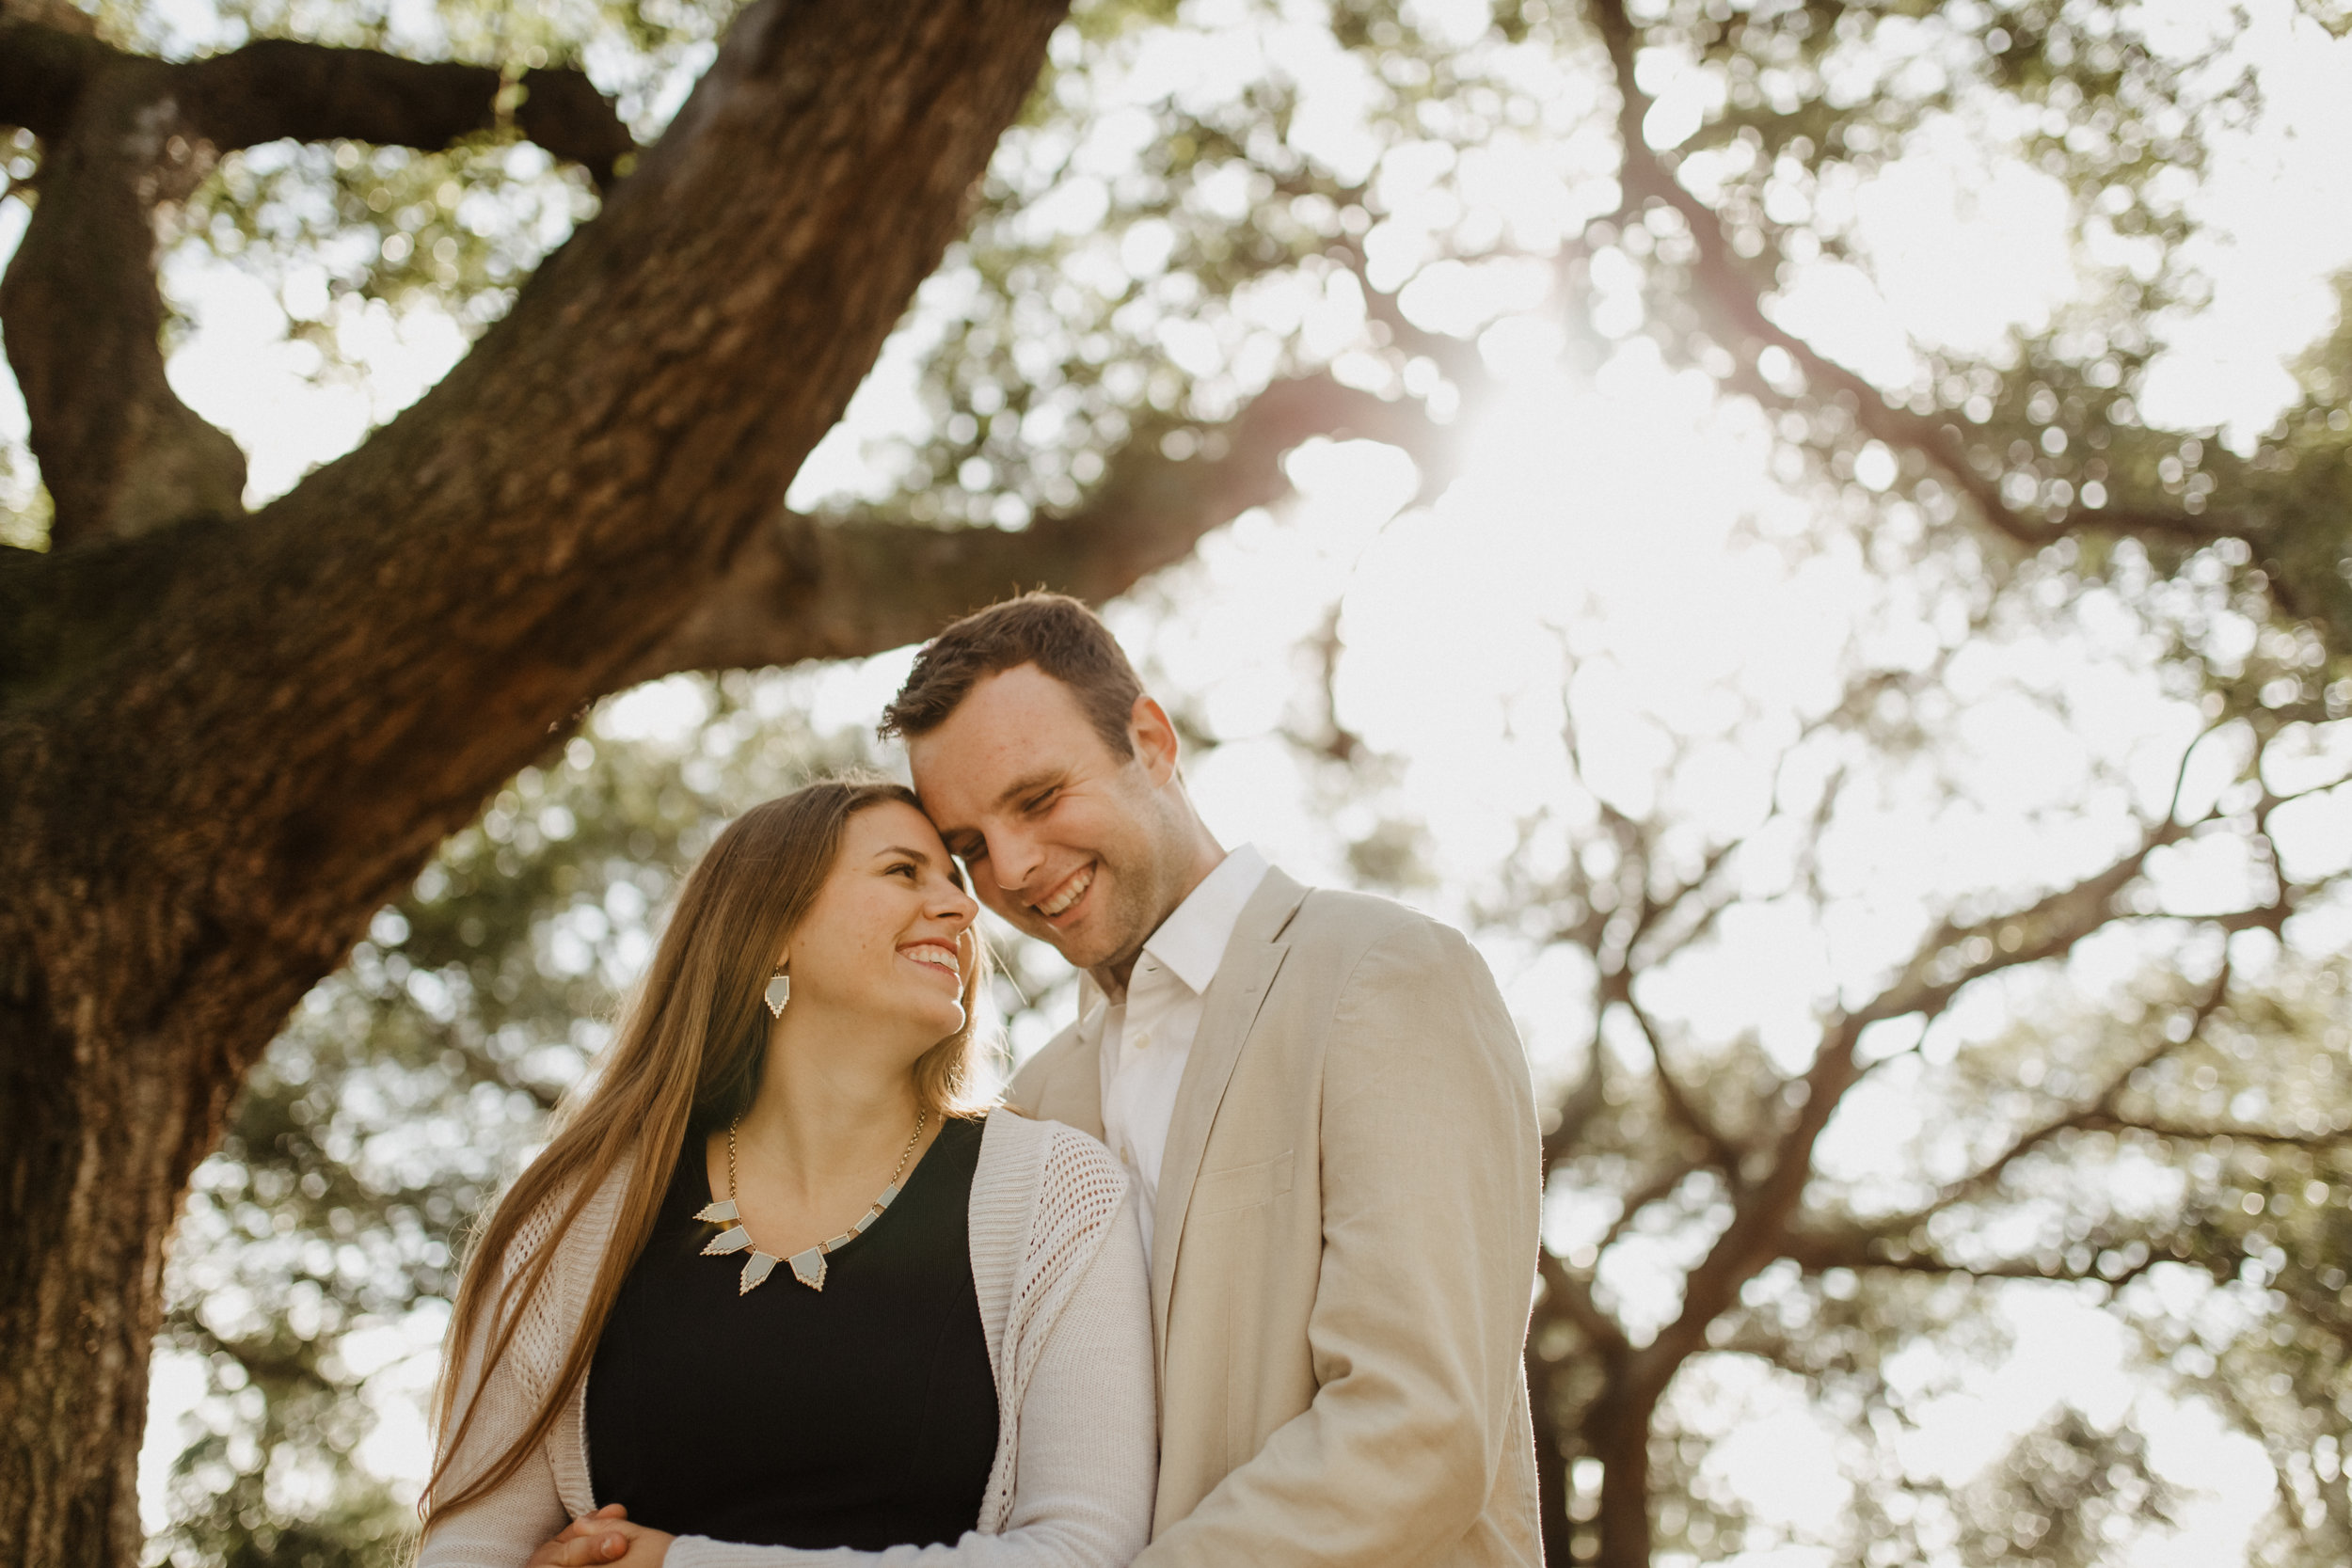 ShadowShinePictures-RachelDavid-Eudy-Engagement-Photography-110.jpg